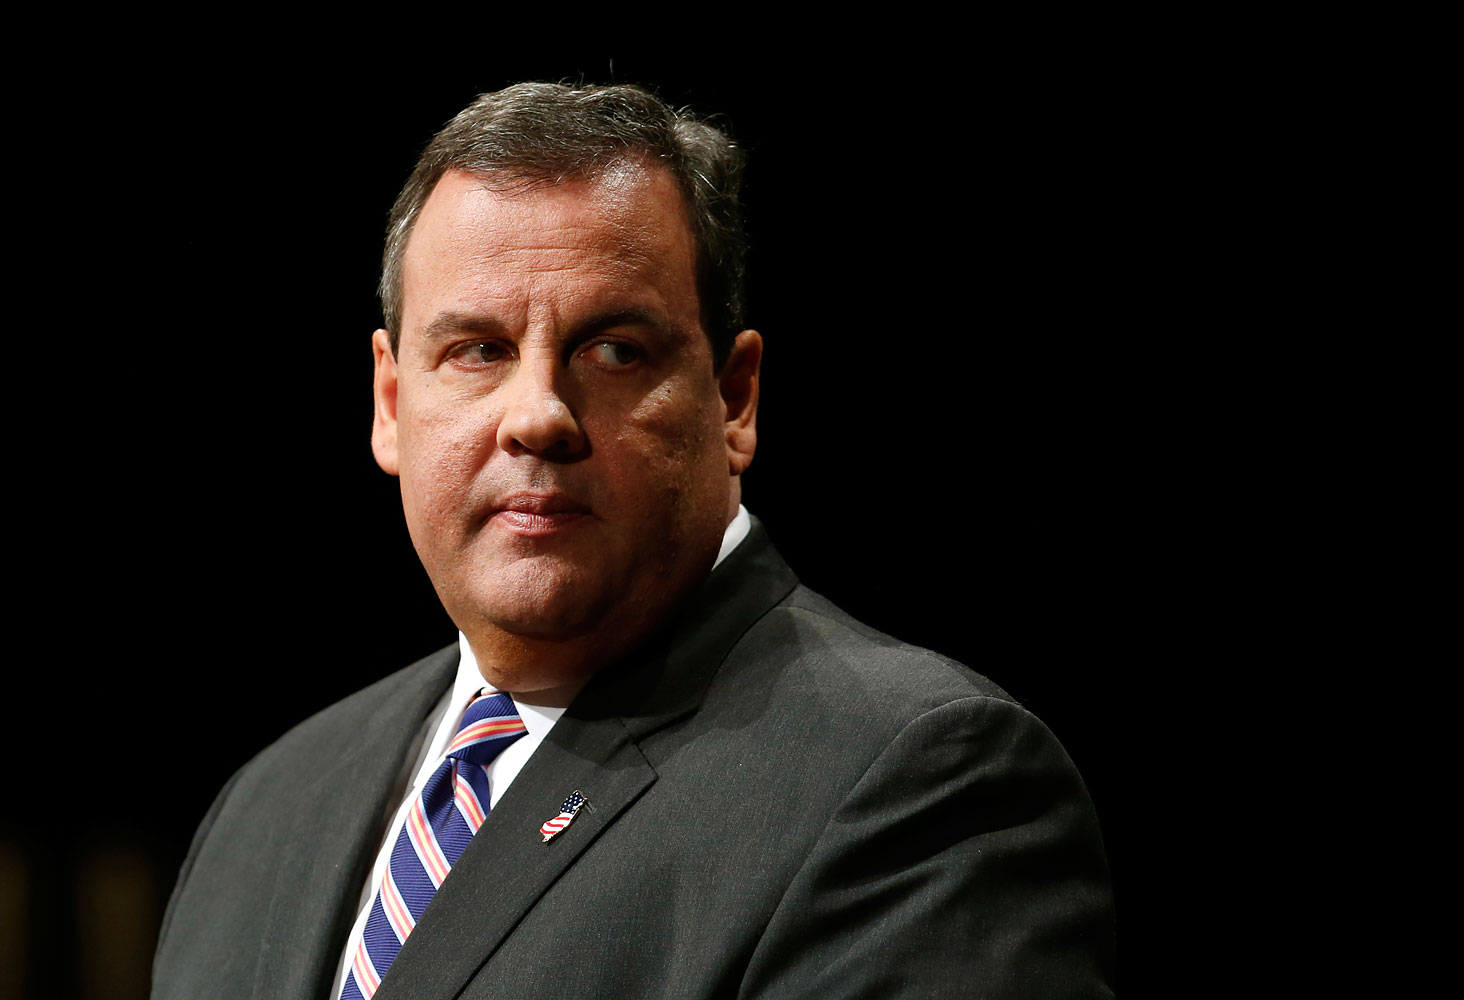 New Jersey Governor Chris Christie delivers an address after being sworn in for his second term as governor on Jan. 21, 2014.